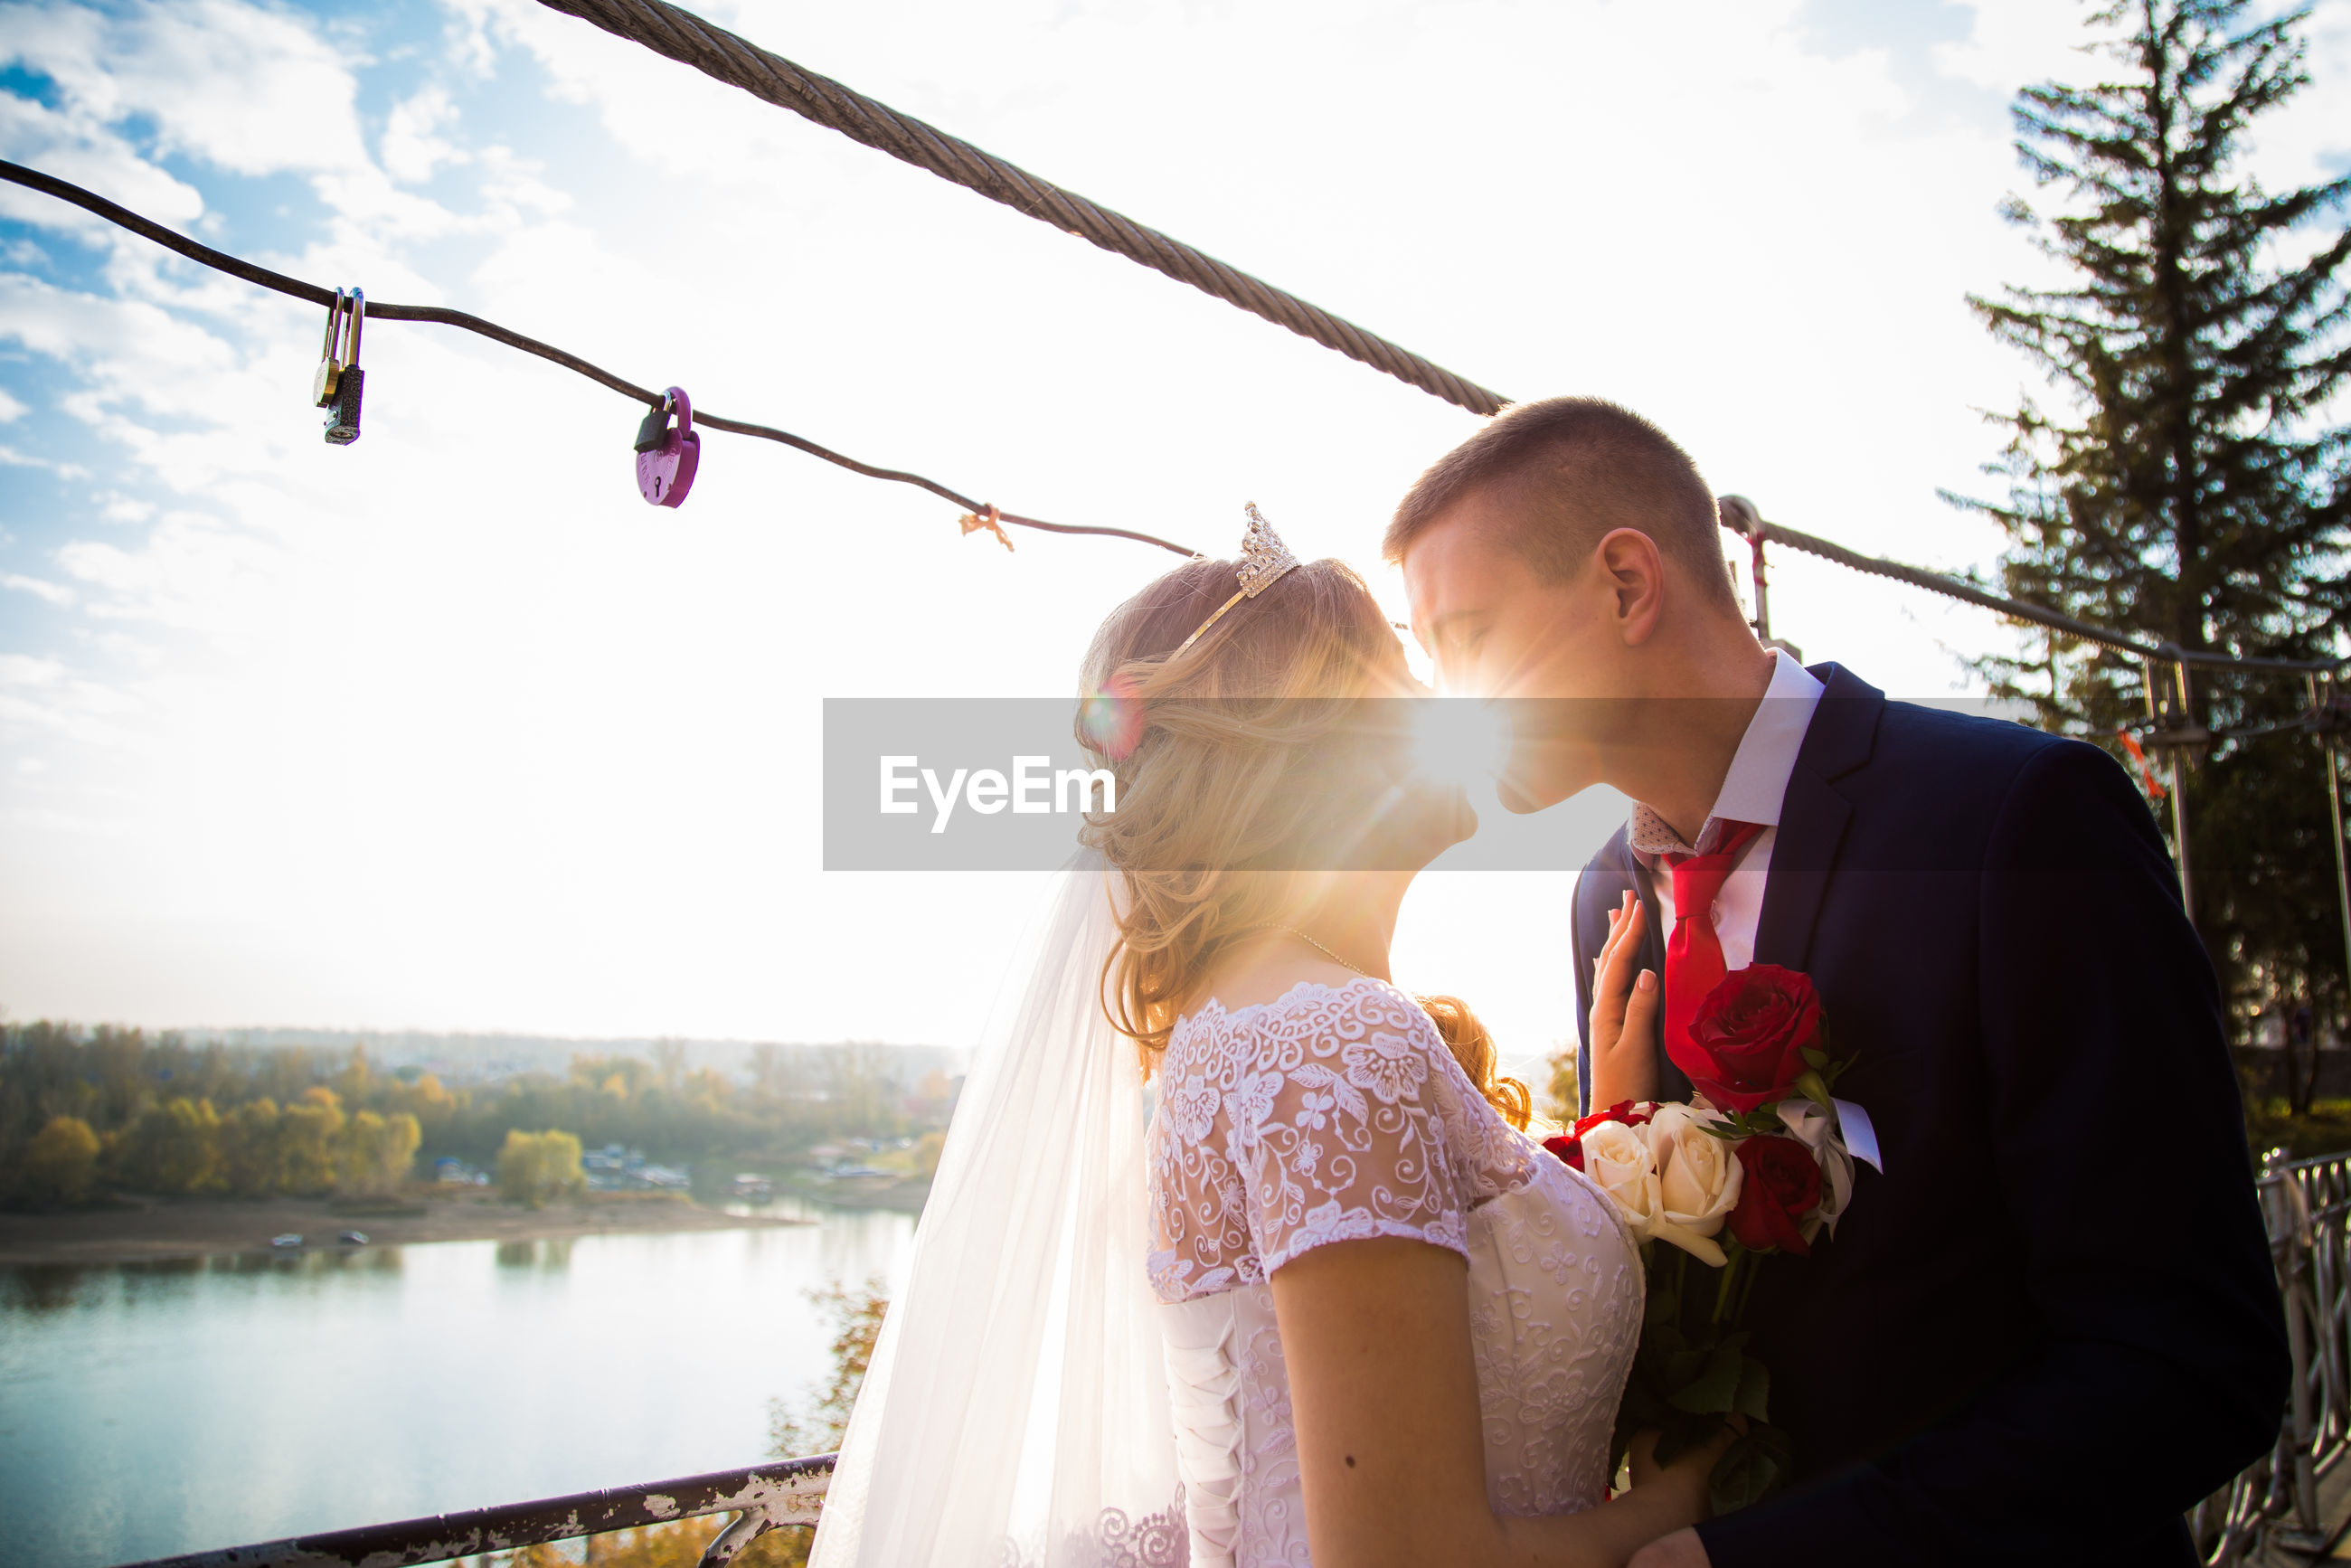 Couple kissing against lake and sky on sunny day